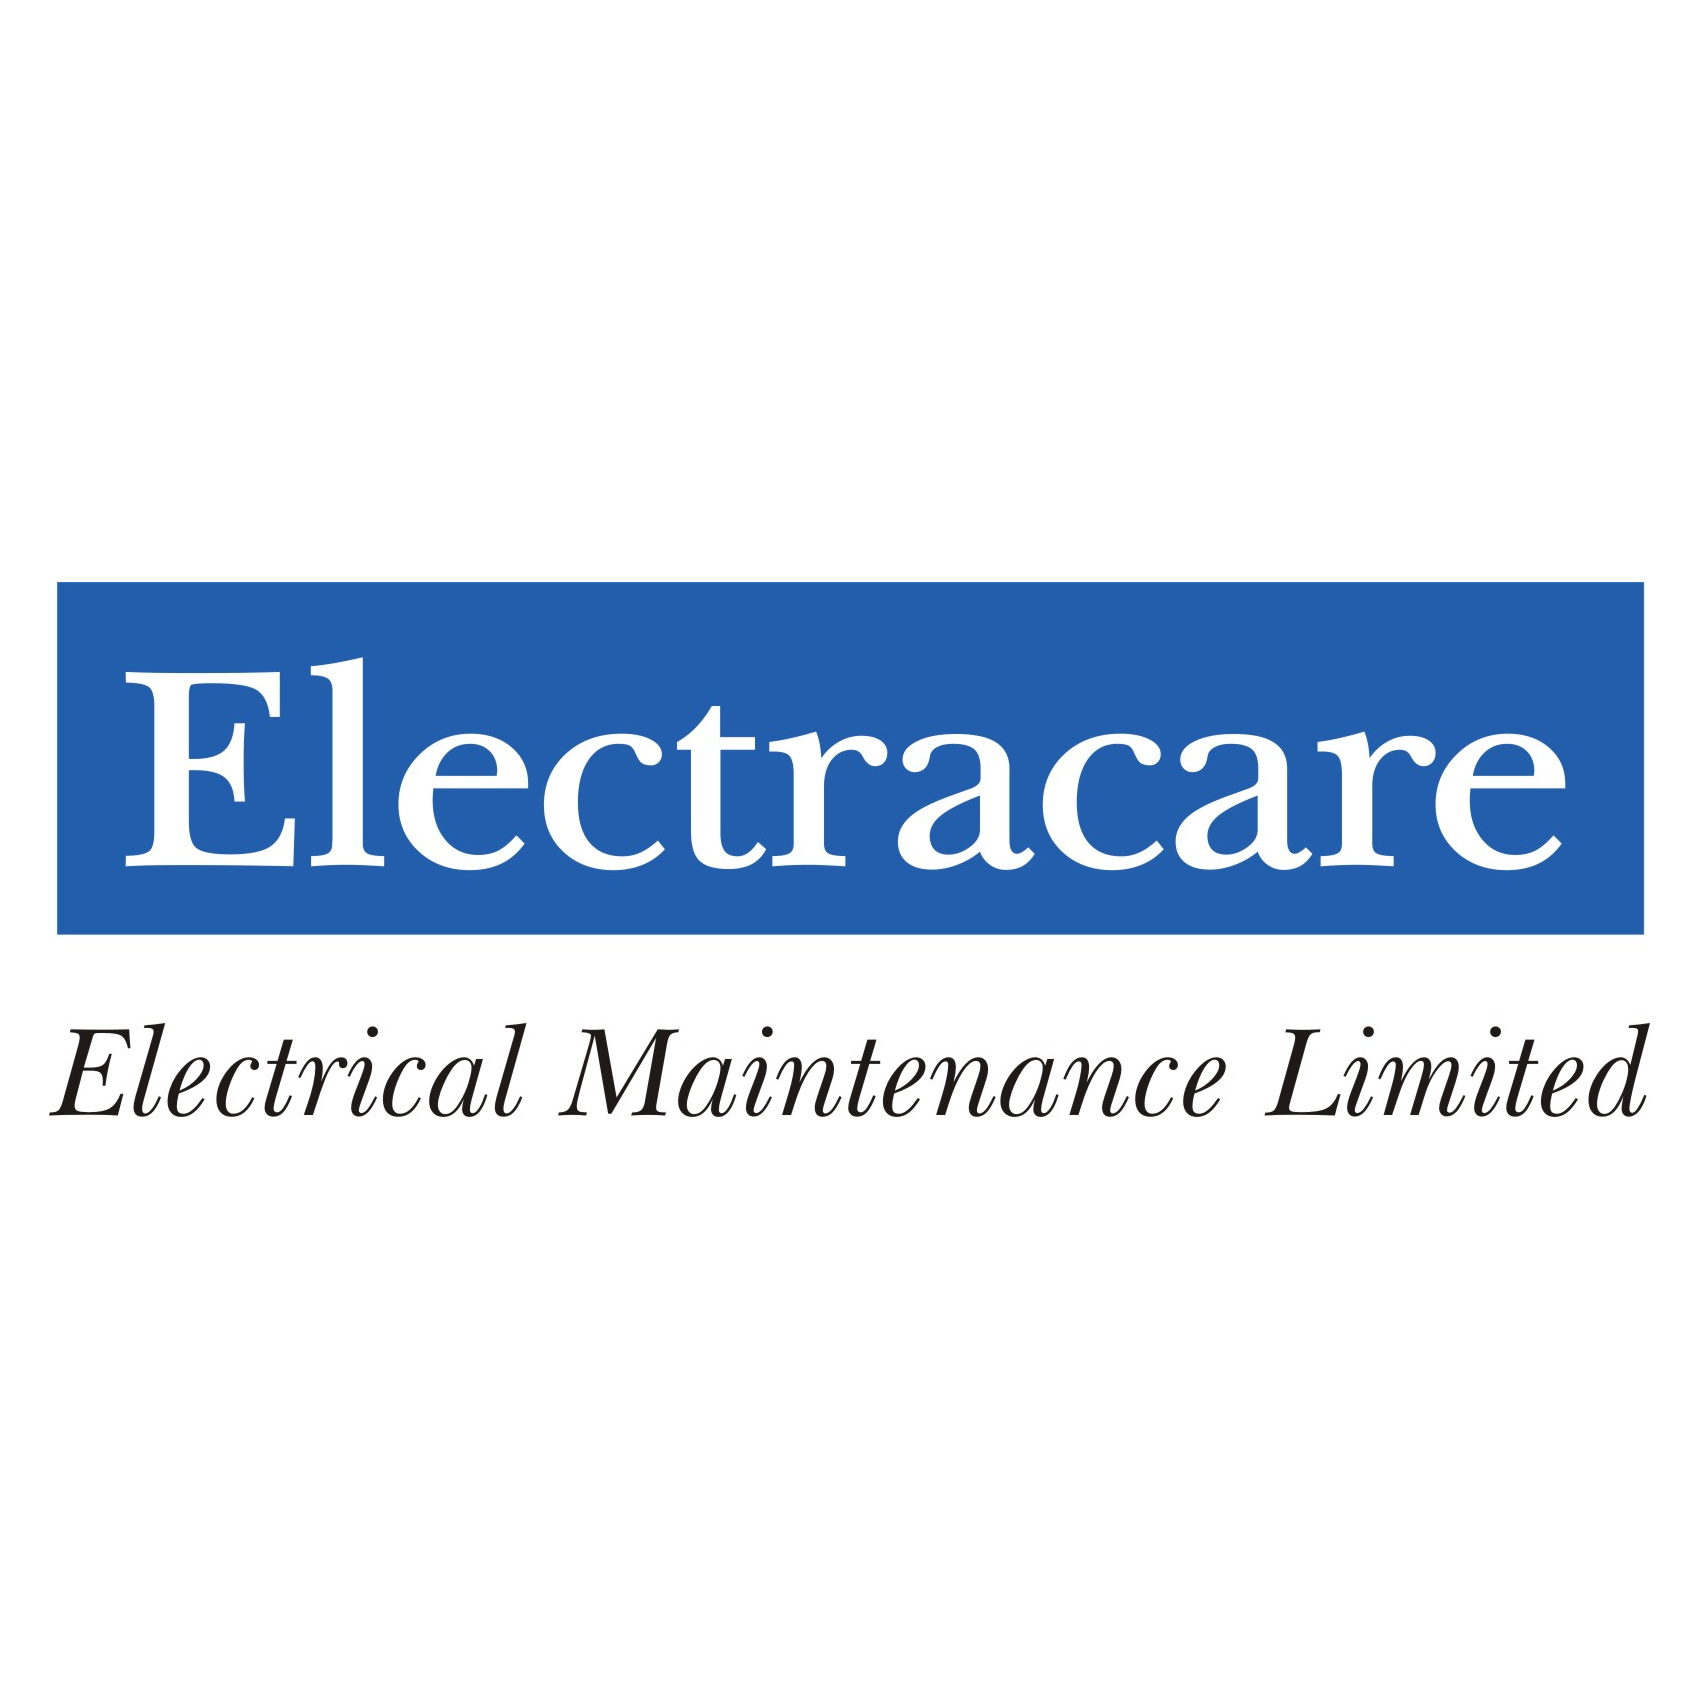 Electracare